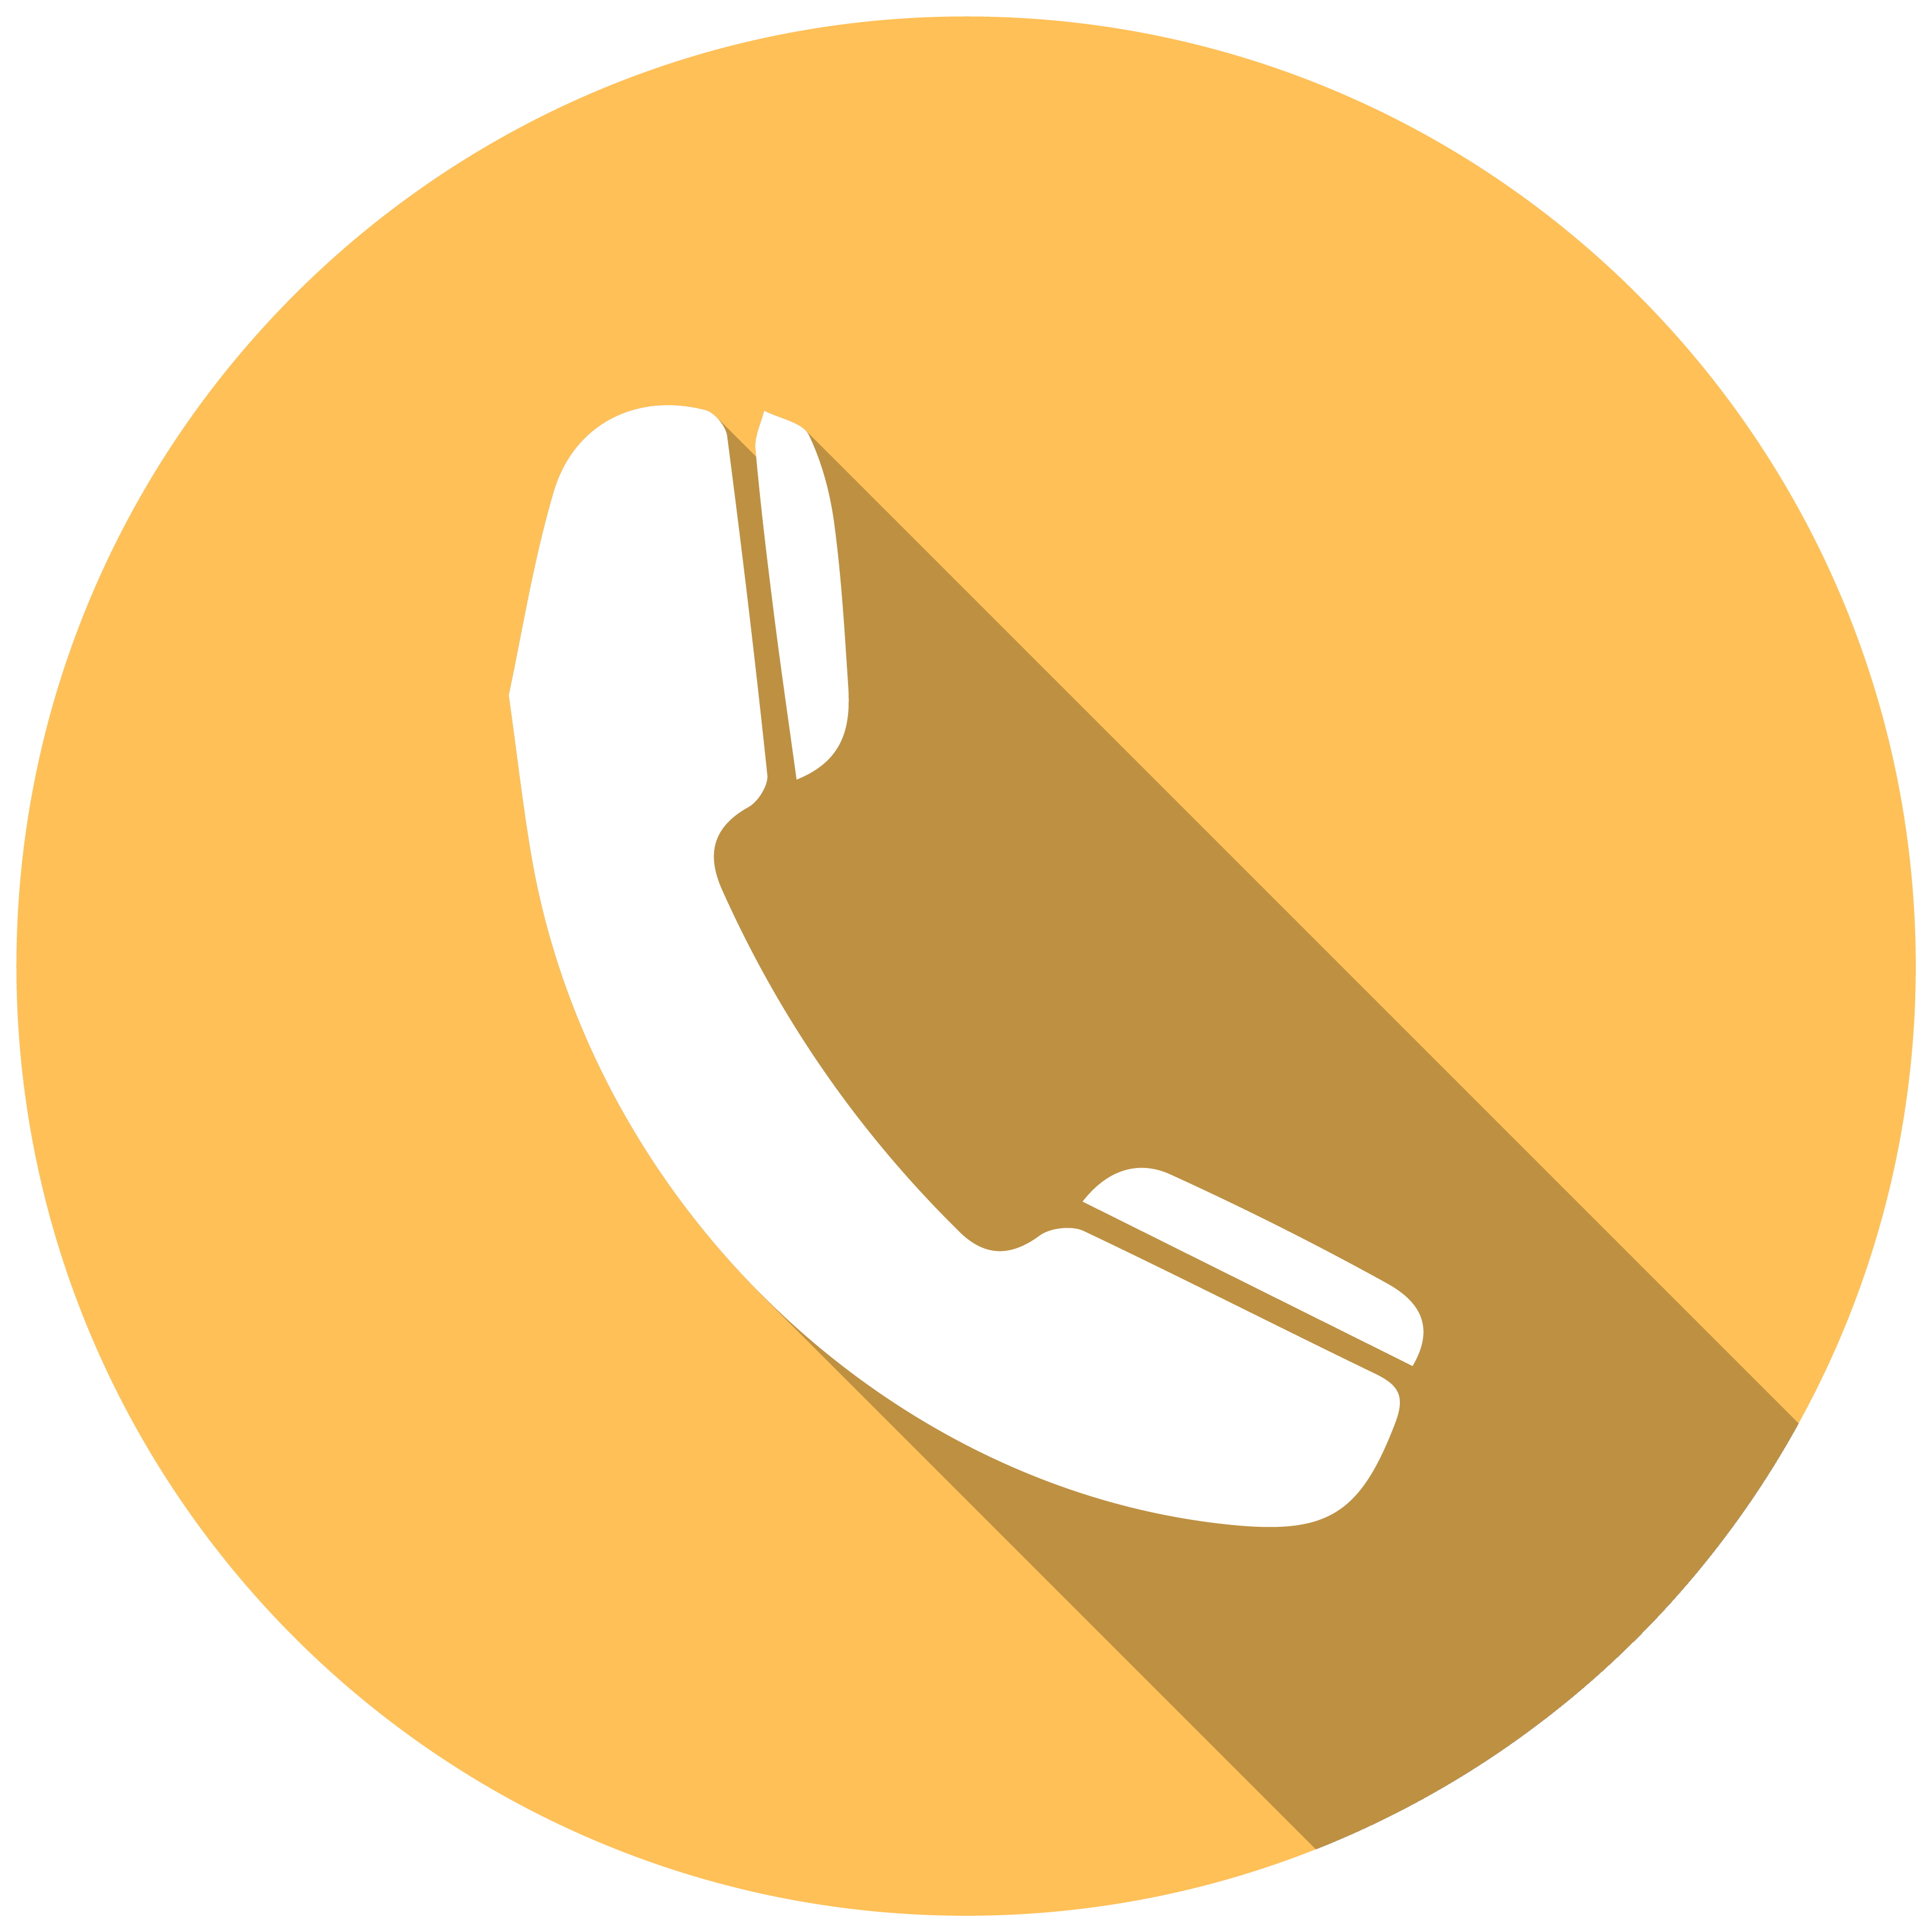 Telephone icons png. Download free transparent image